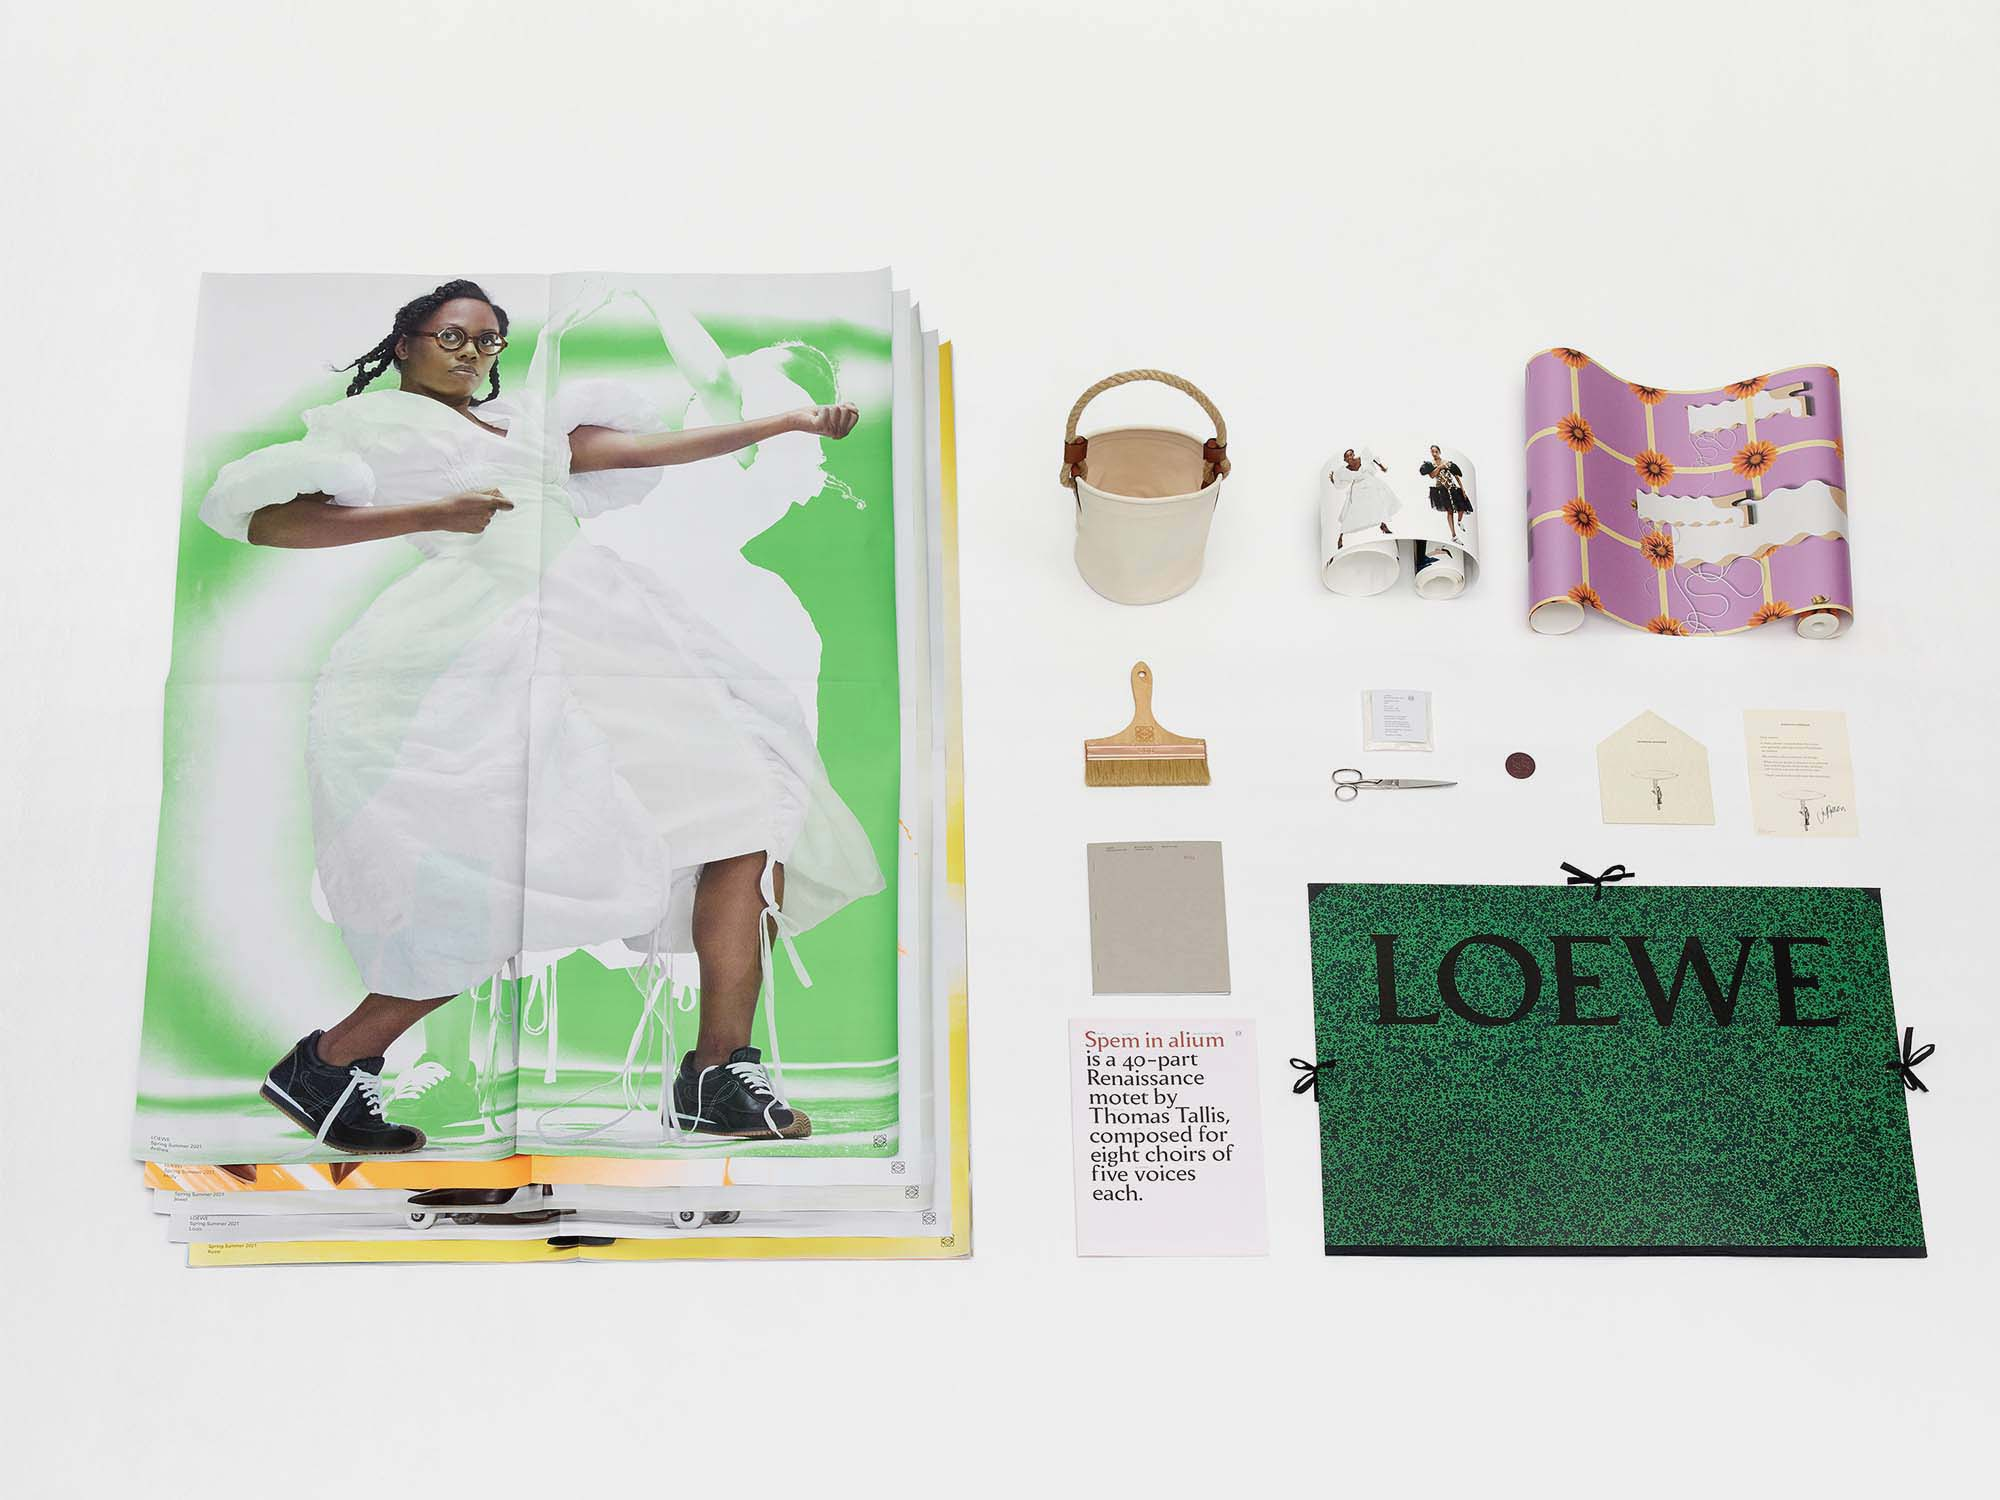 Loewe and friends return with an off-the-wall fashion experience